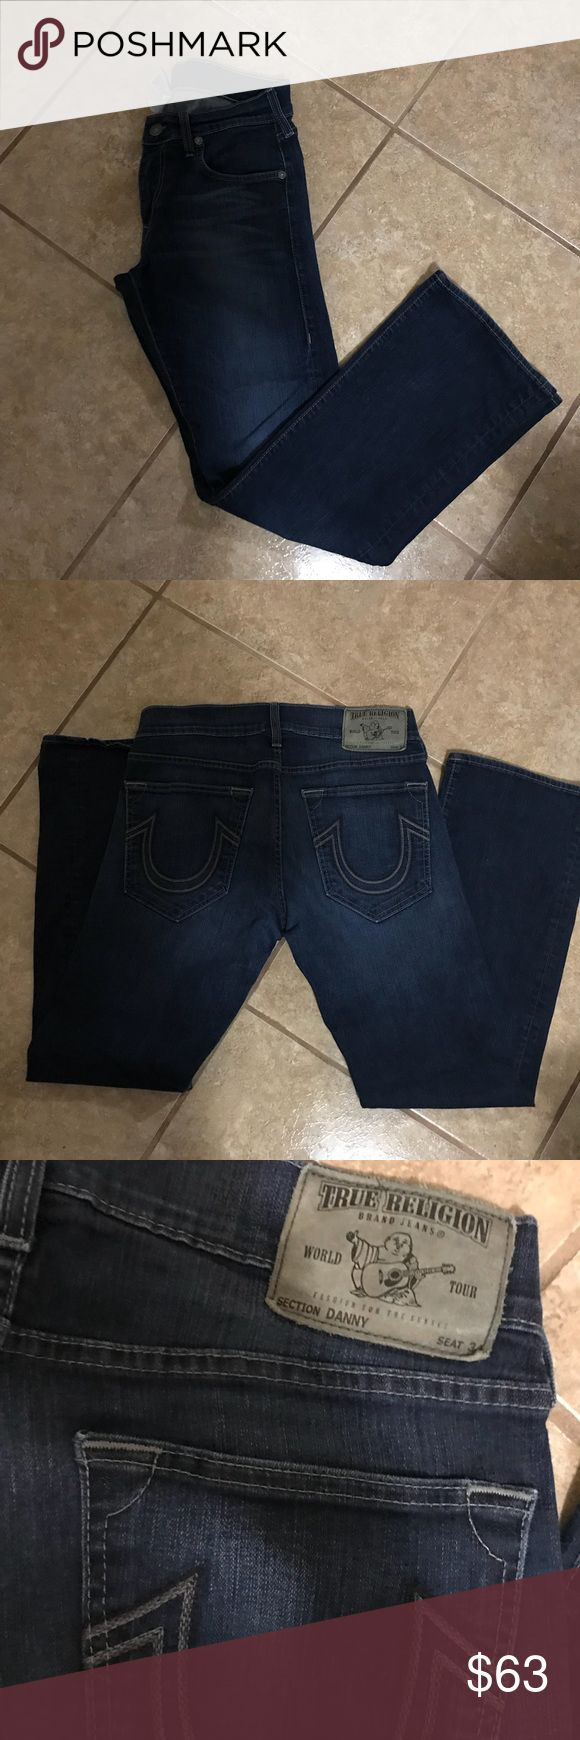 True Religion Jeans for Men True Religion Jeans in size 33 for men . Have no tags but are brand new . True Religion Jeans Bootcut